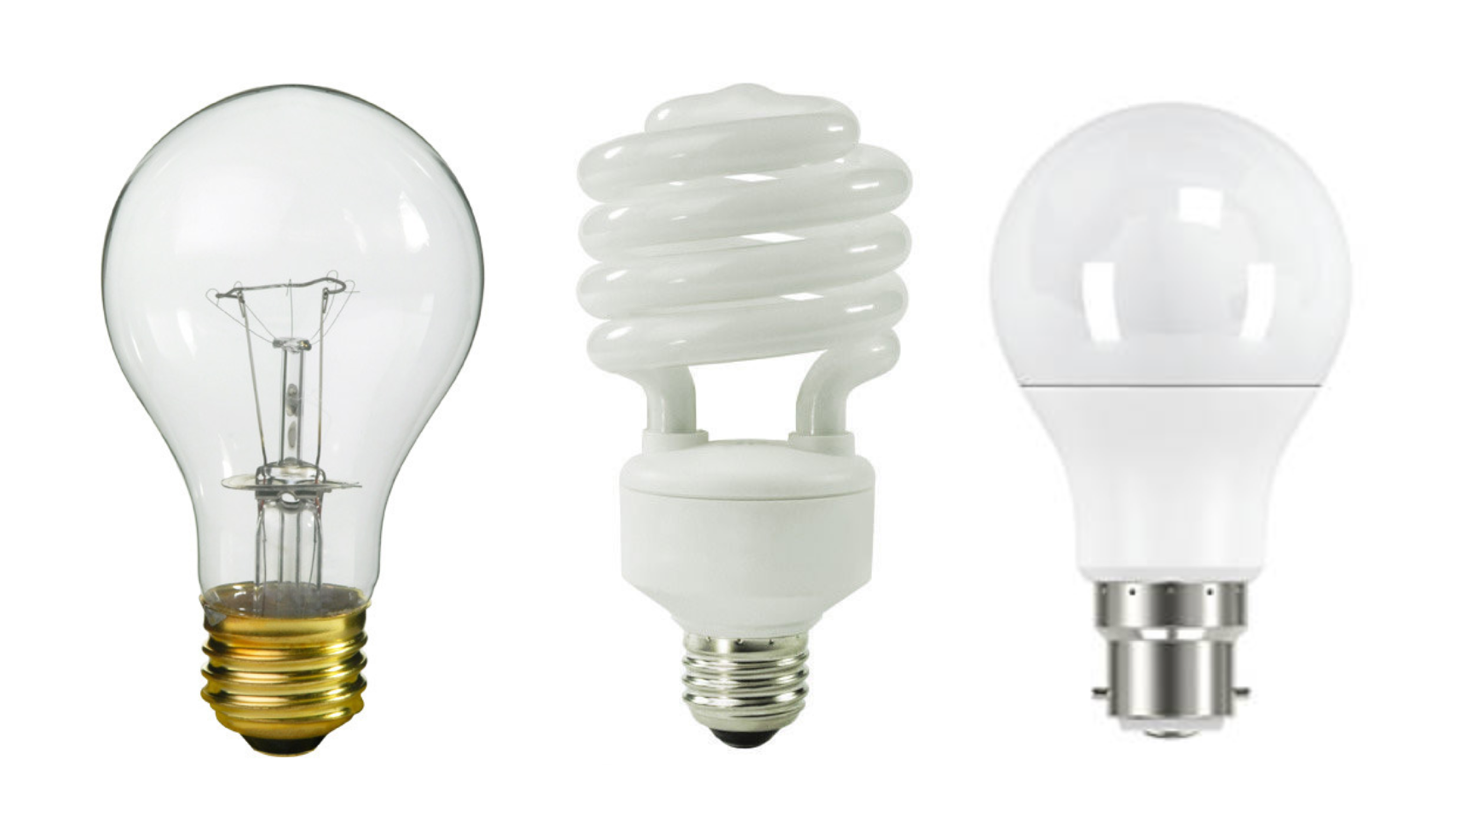 The 3 types of lightbulbs we can buy: incandescent, fluorescent, and LED. Light bulb temperature is measured by Kelvins (K). The lower the K value, the warmer the light, with fluorescent bulbs can be up to 5000K, and a flame producing closer to 1500K.